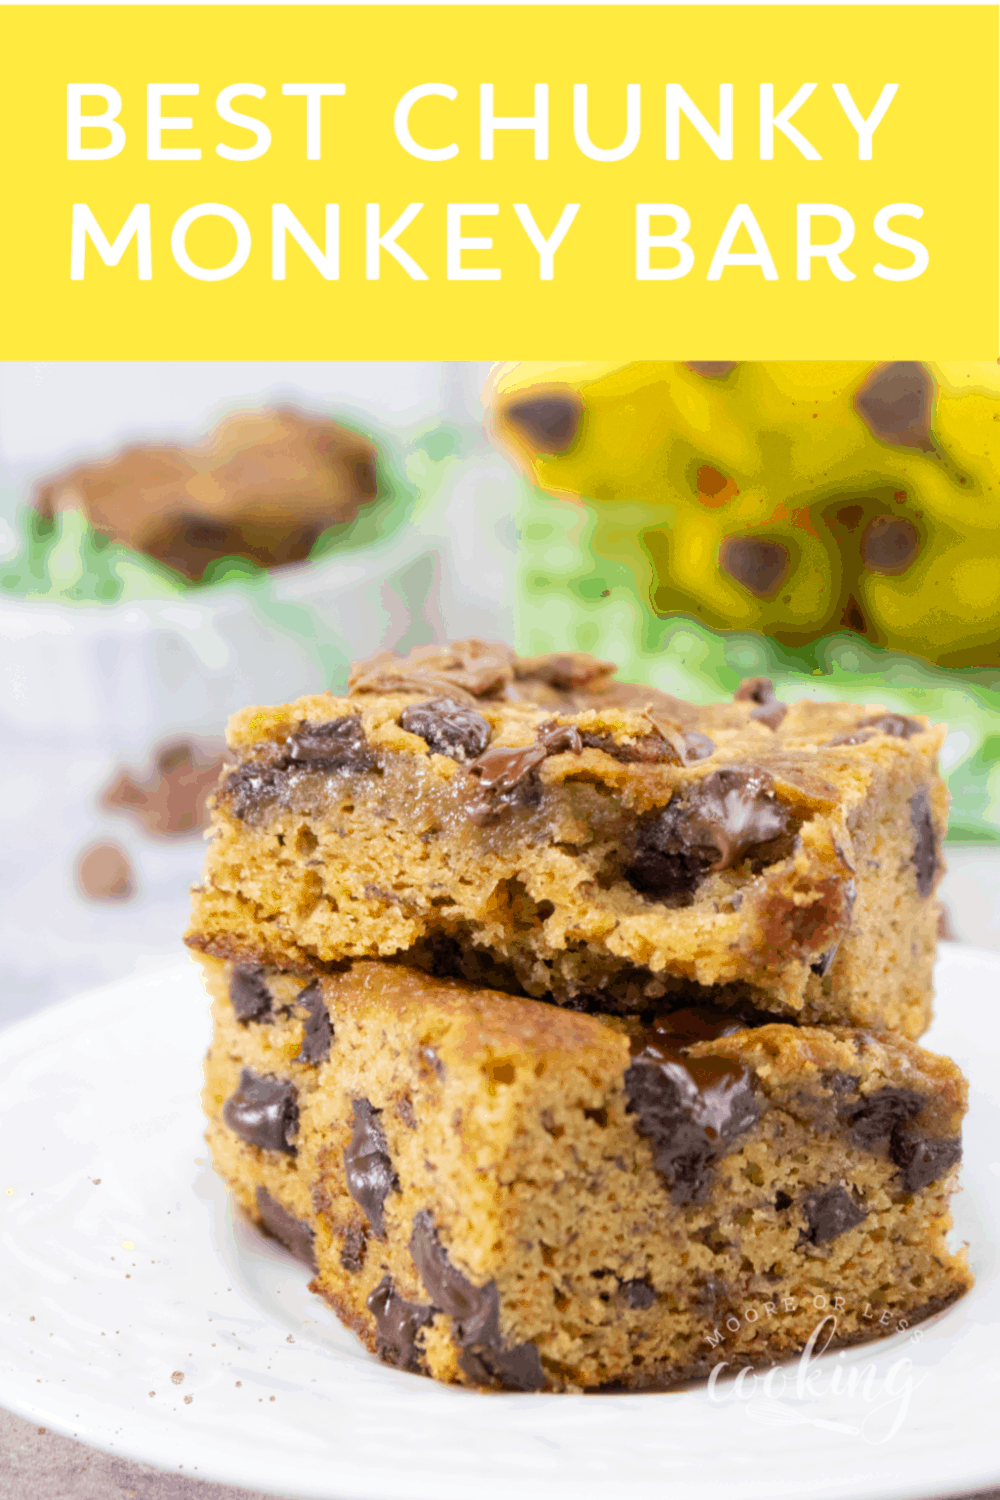 Best Chunky Monkey Bars. This is one of the best ways to use up those ripe bananas sitting on the counter. #cookiebars #banana #chocolate #dessertbar #mooreorlesscooking  via @Mooreorlesscook